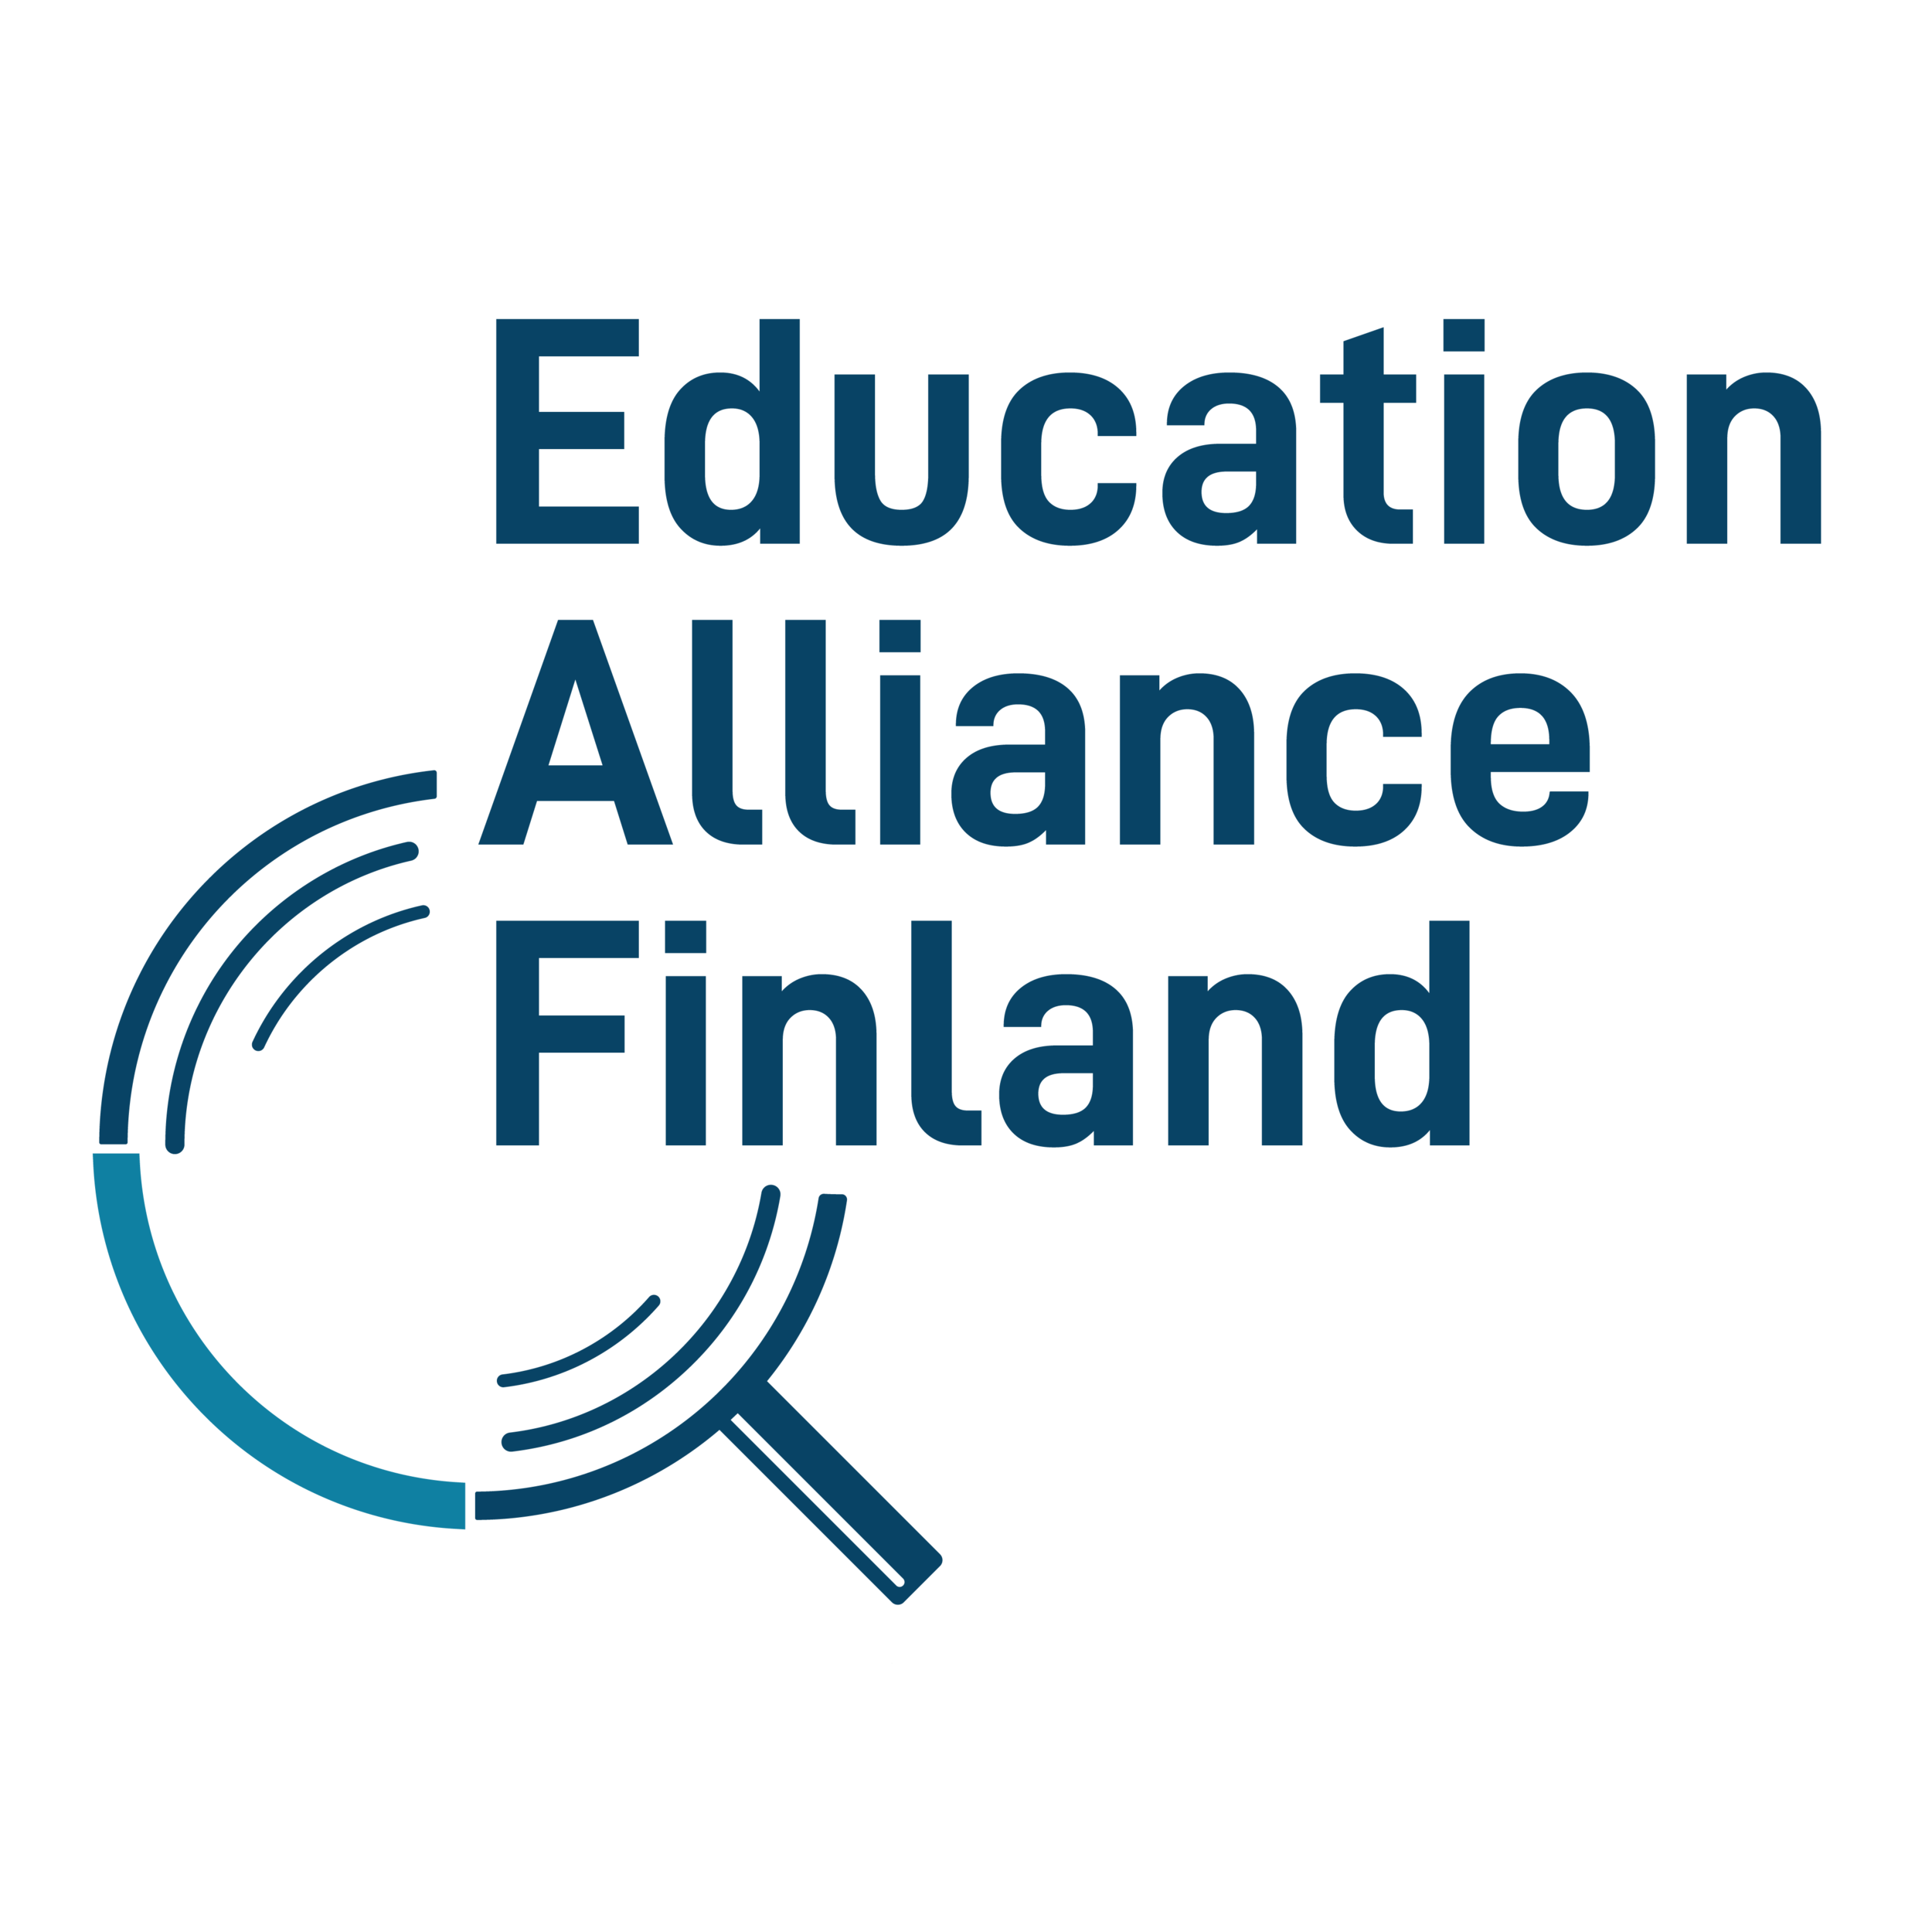 EducationAllianceFinland_CompanyLogo_Blue.png